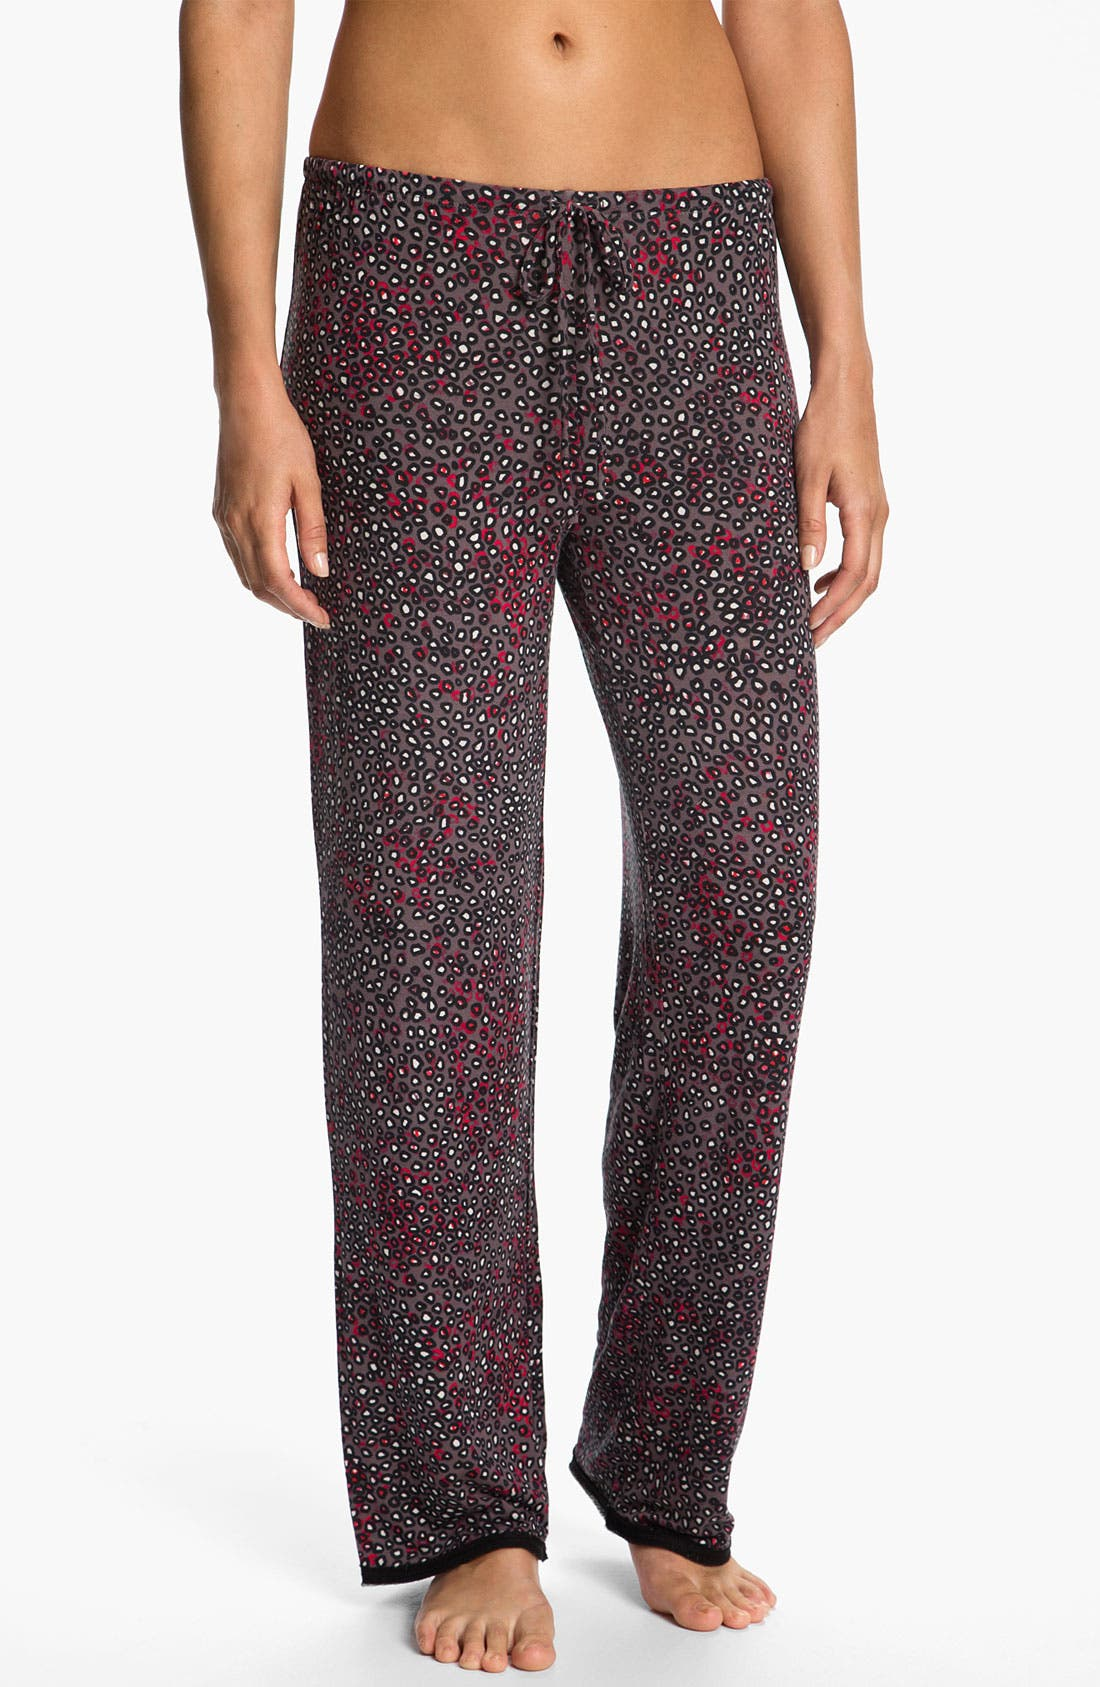 Alternate Image 1 Selected - DKNY 'Sheer Bliss' Lounge Pants